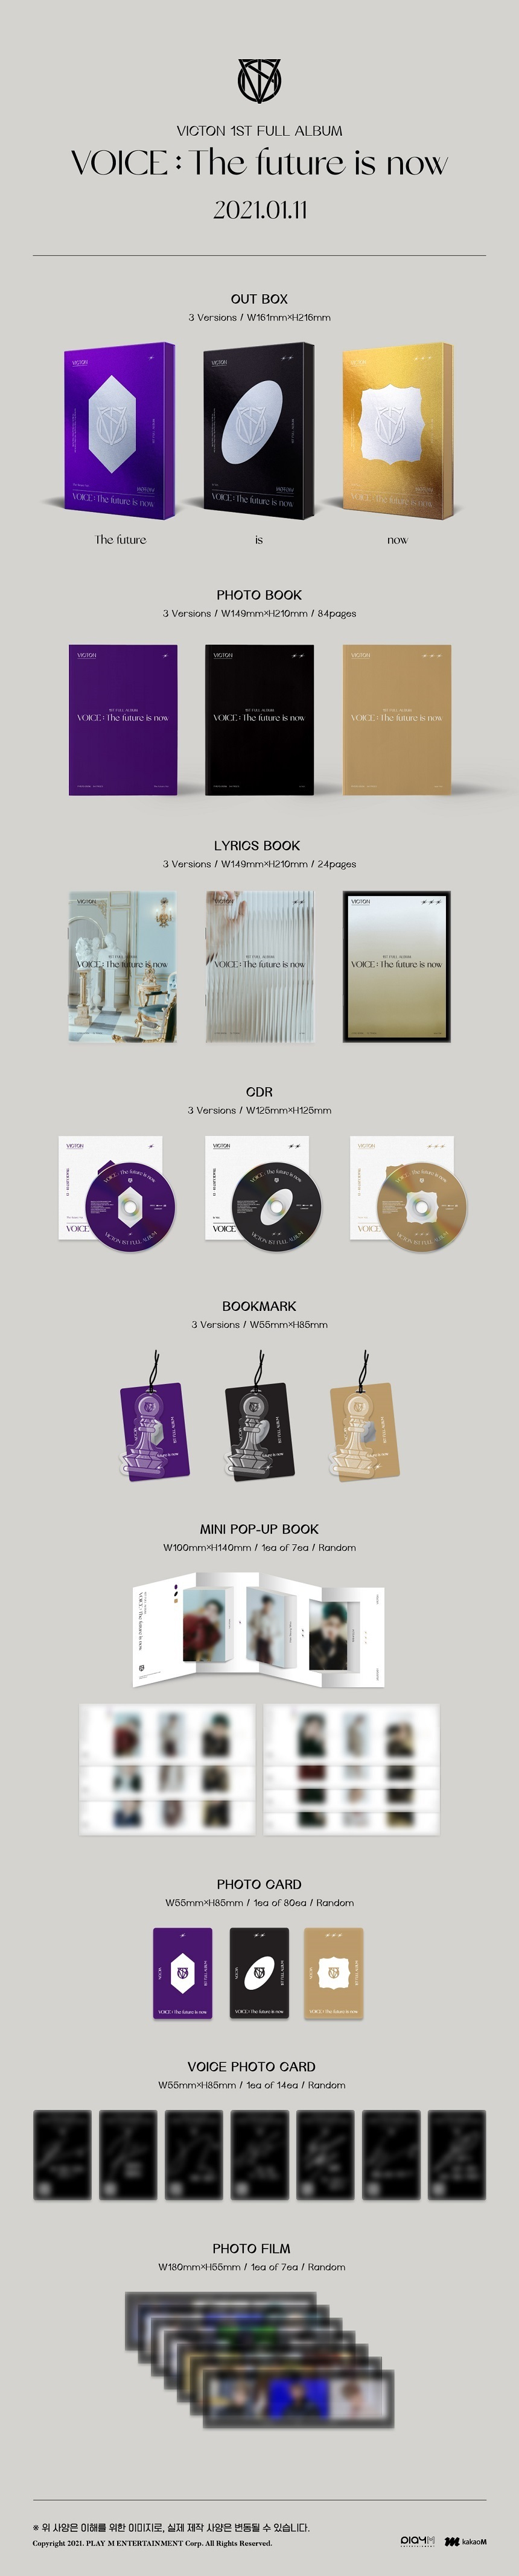 http://ai.esmplus.com/sori0311/KPop/PlanA/VICTON/The%20future%20is%20now%20packshot.jpg